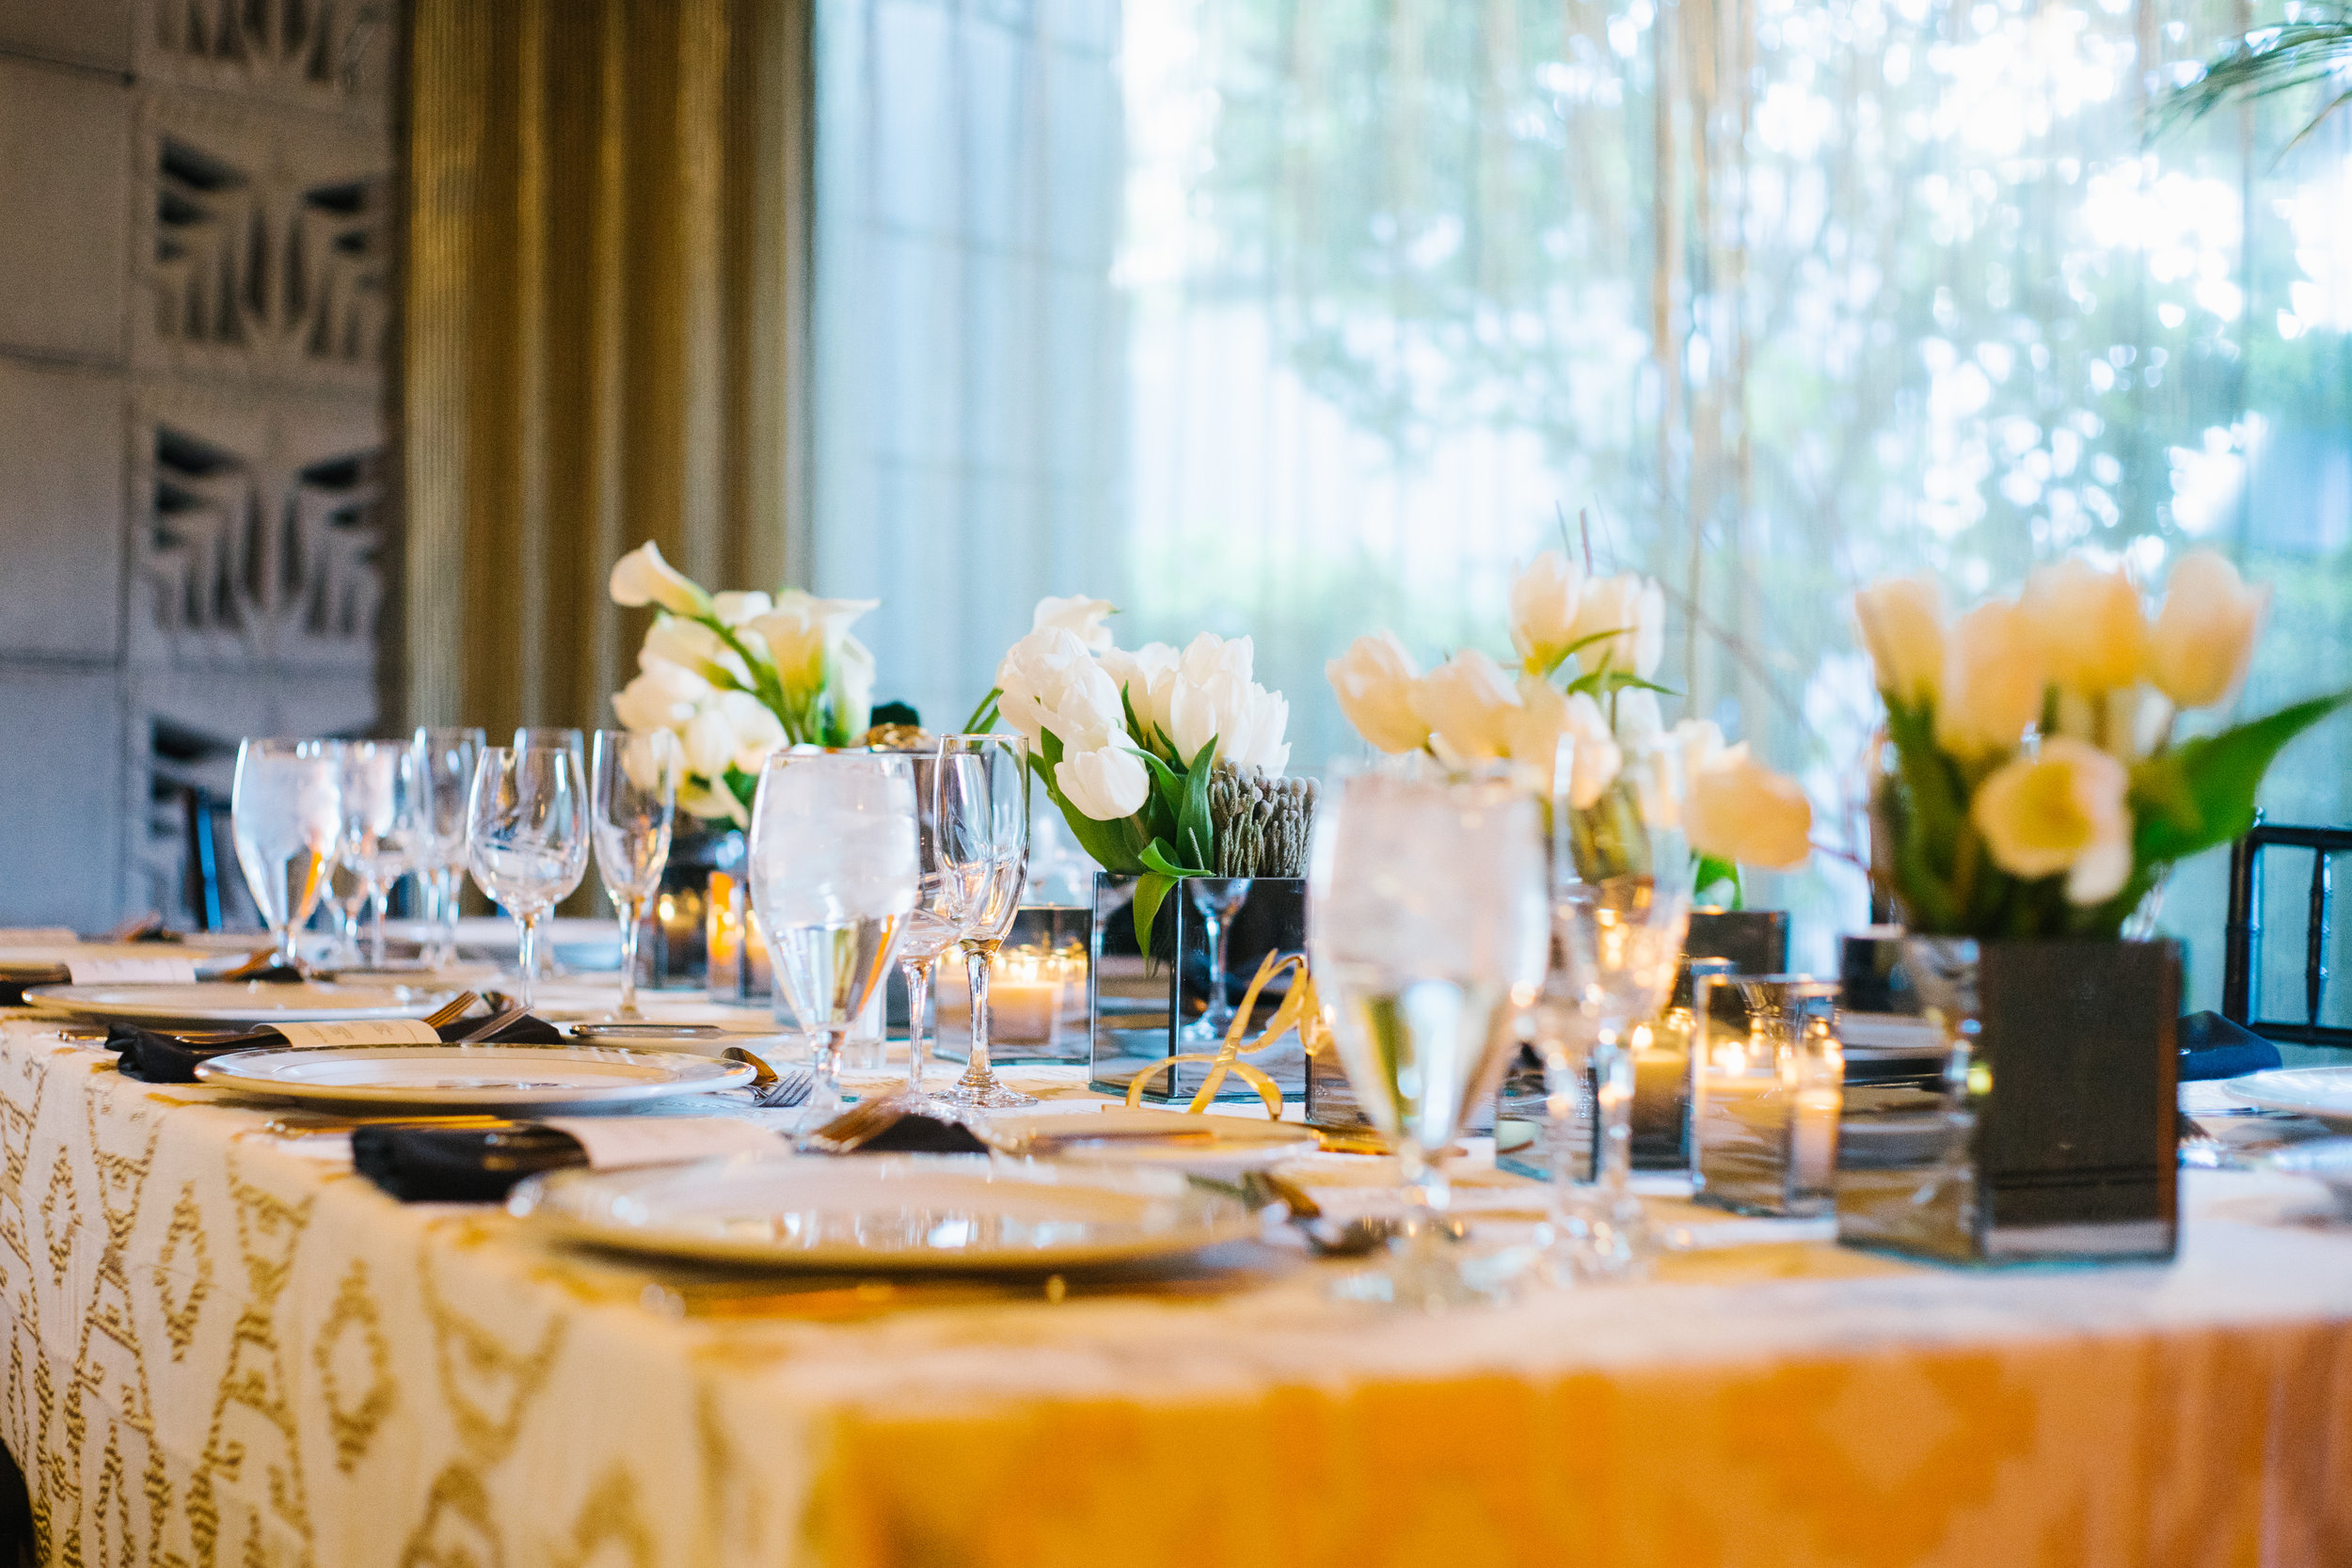 17 reception dinner simple wedding table gold linen white tulips white centerpiece smoke vase dinner reception place card arizona biltmore block Life Design Events photos by Keith and Melissa Photography.jpg